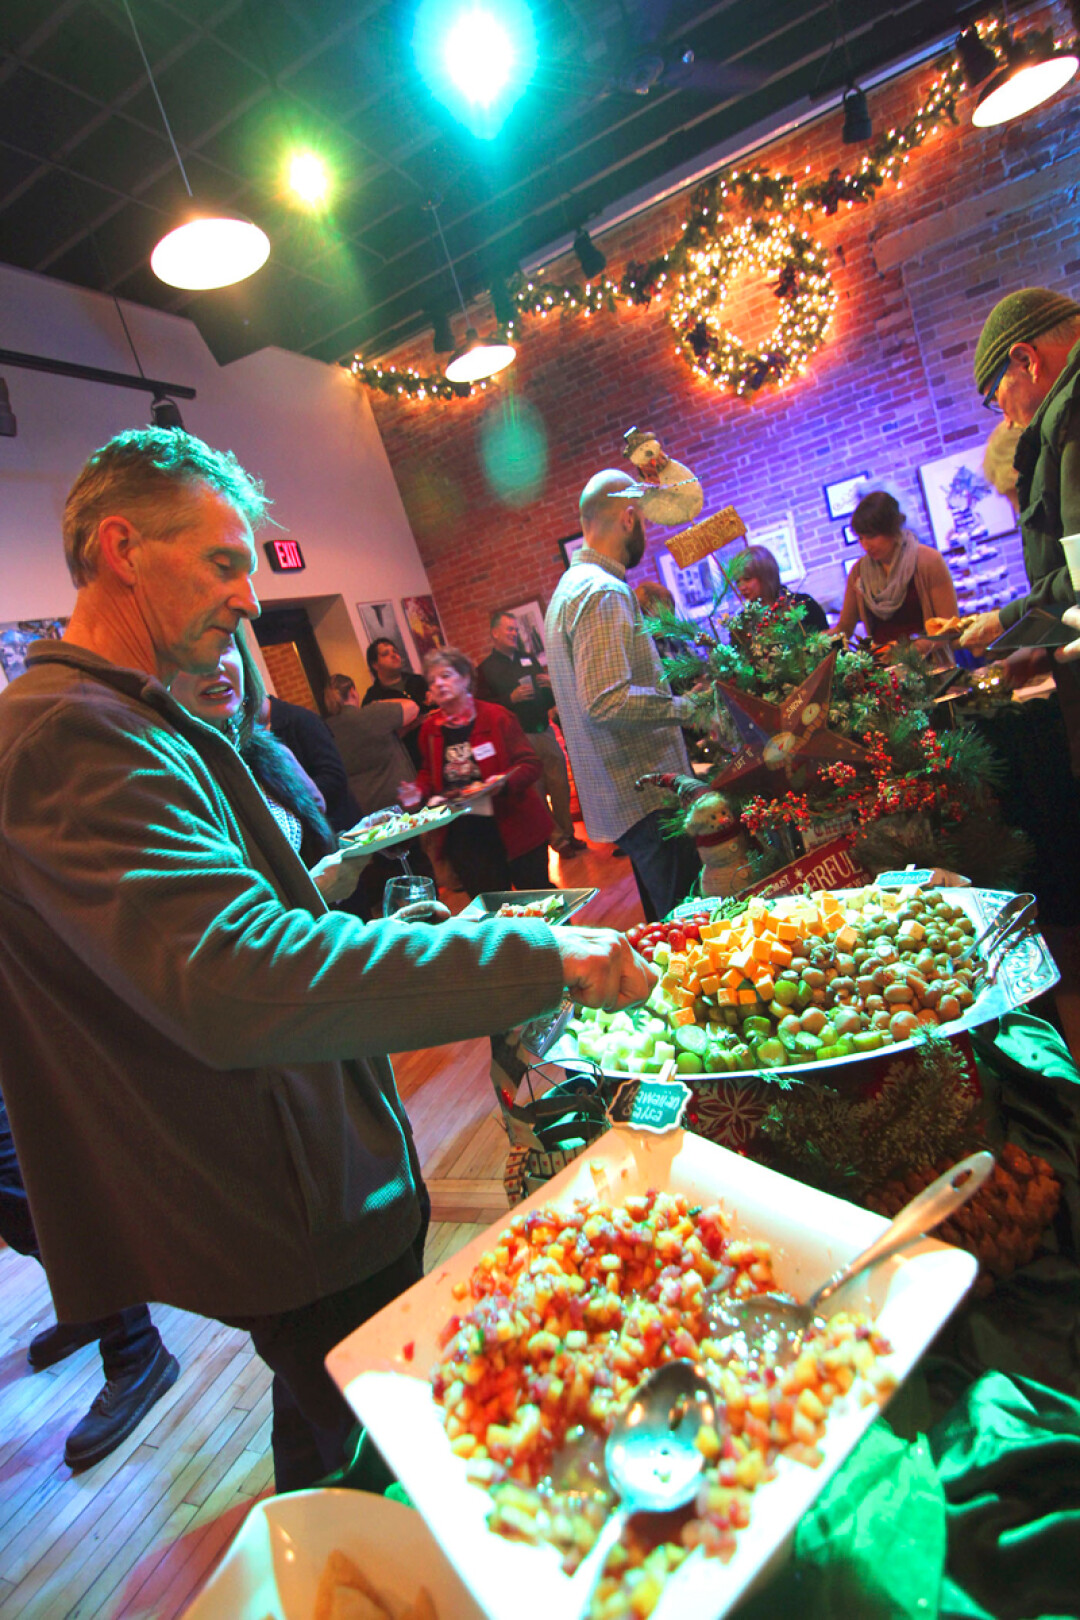 Holiday party catered by KP Katering